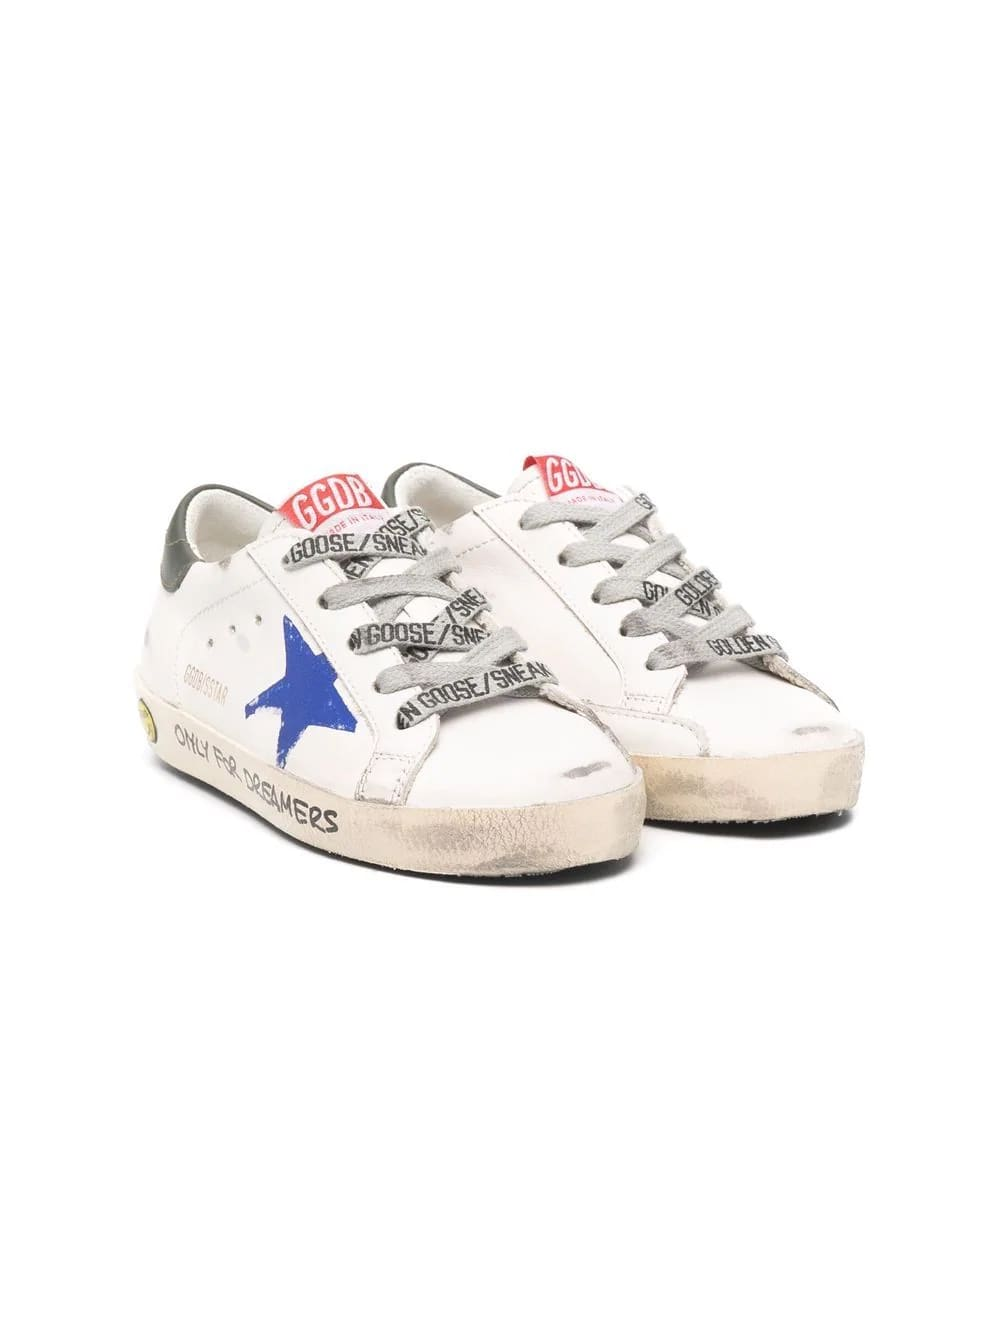 Golden Goose Kids White Super-star Sneakers With Blue Star And Black Spiler